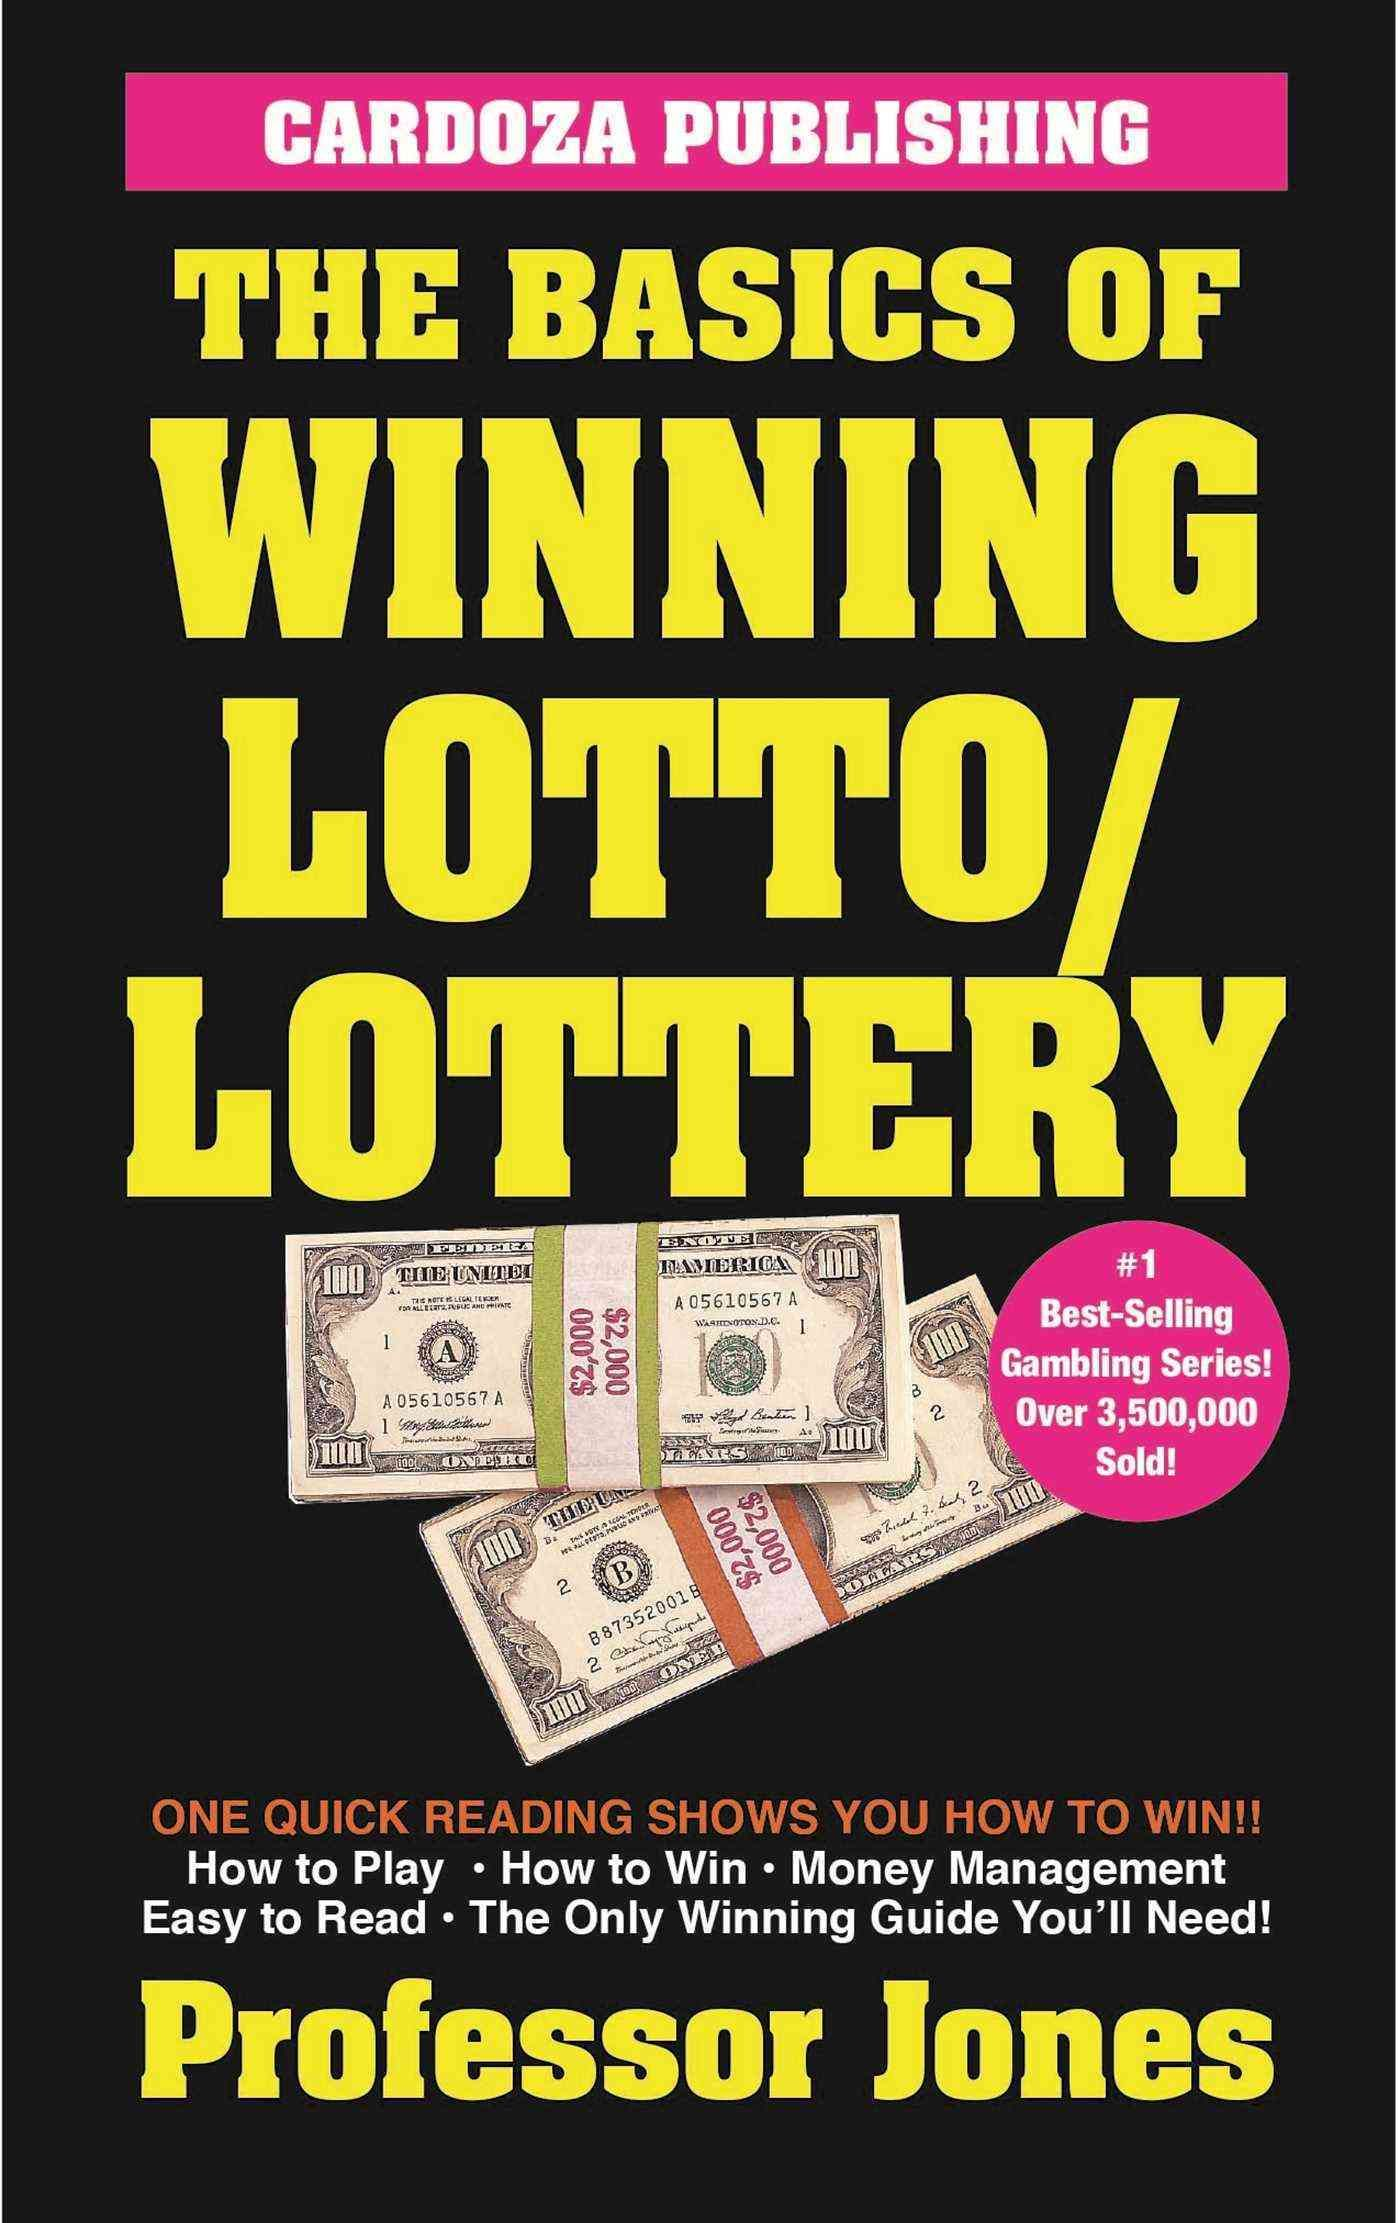 A quick and easy guide that gives players an approach to winning million-dollar jackpots! This handy guide shows bettors everything they need to know to play and win money at lotto and lottery game in